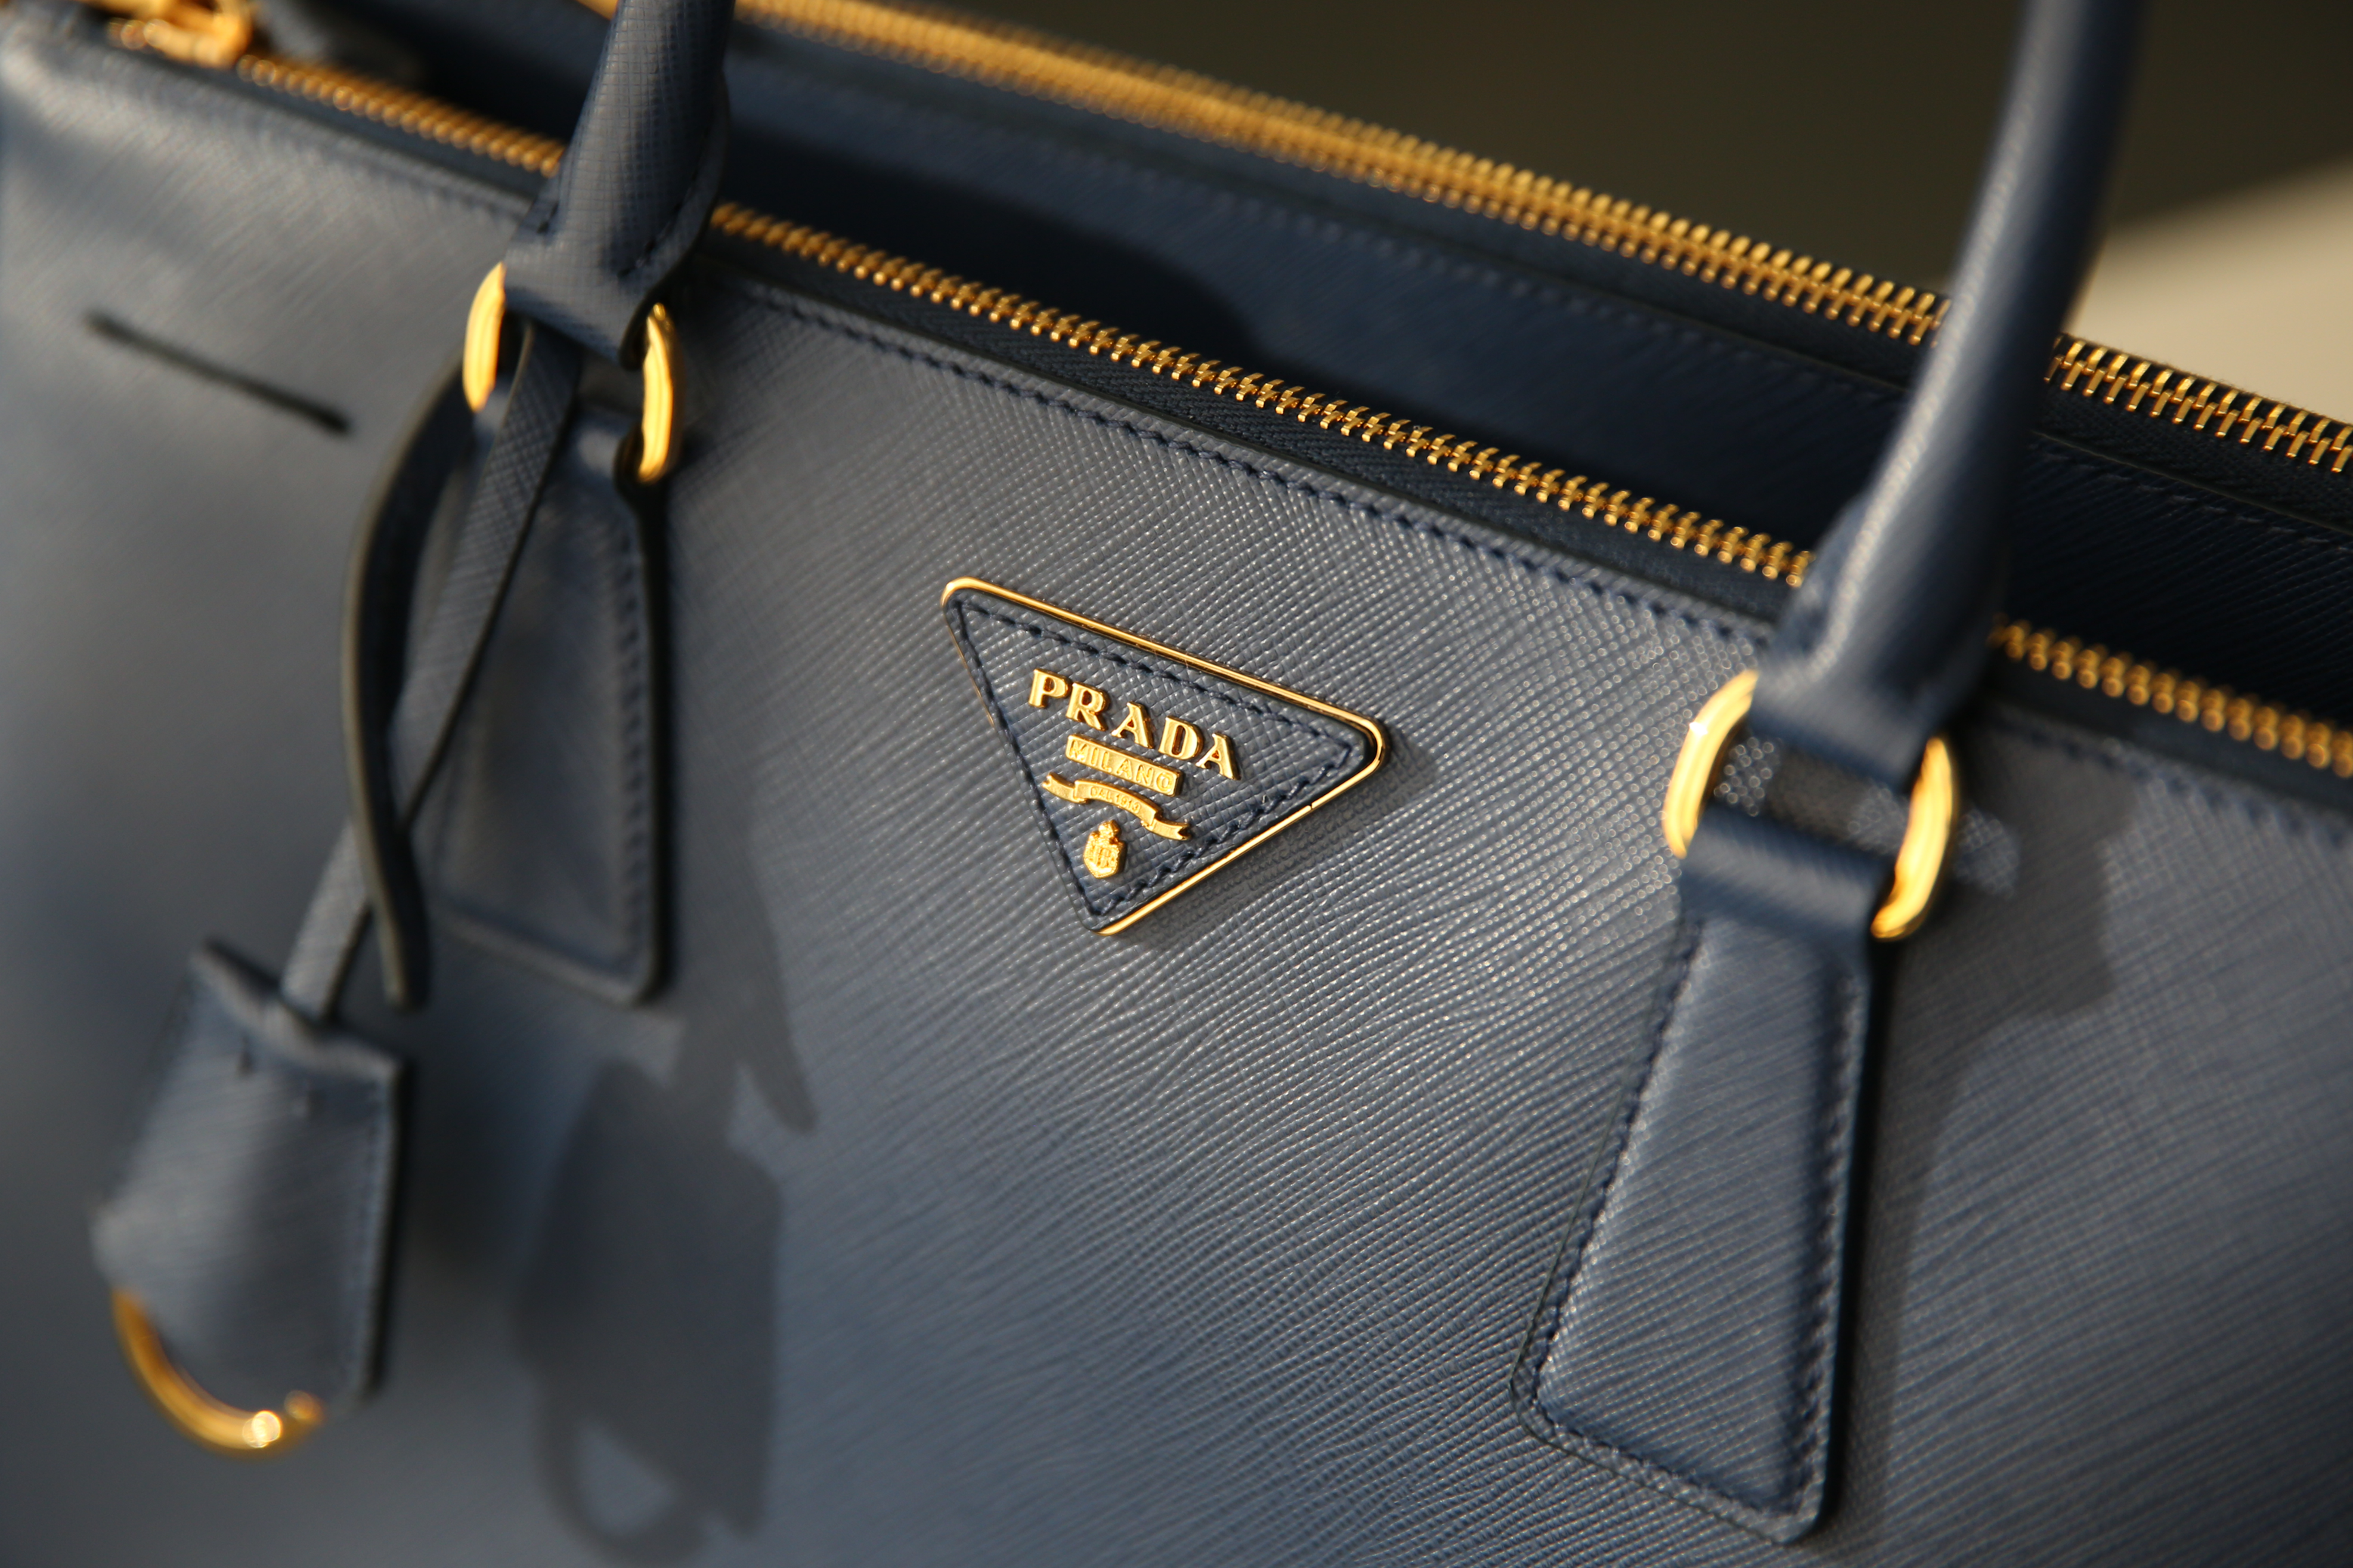 d00679983c636b How to Authenticate Prada Saffiano Handbags | Material World Blog